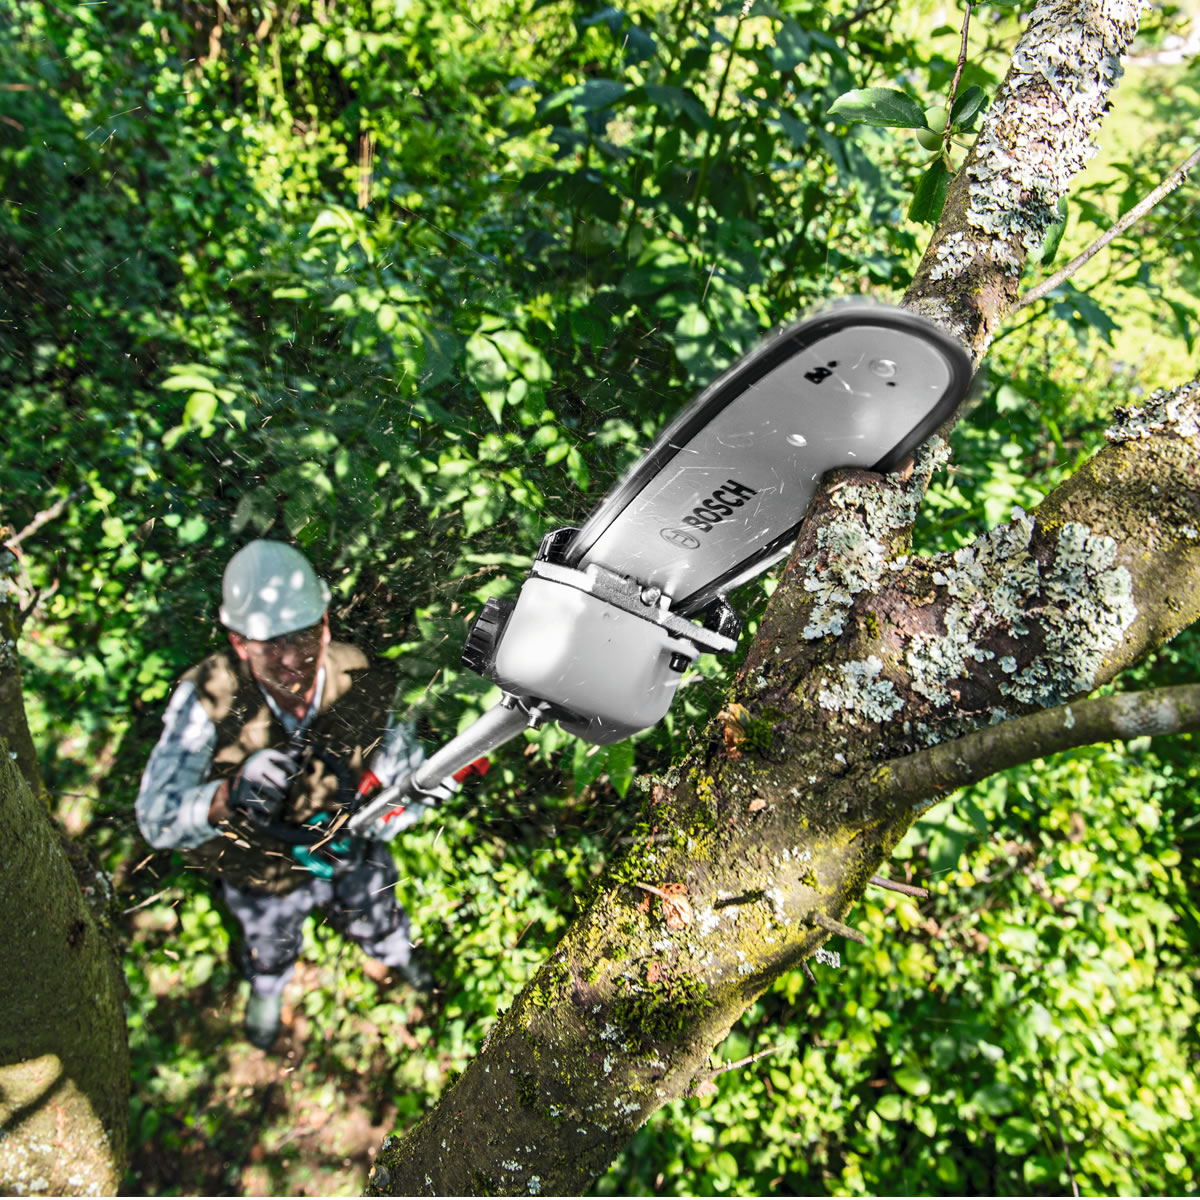 Extra image of Bosch AMW10 Multi Tool and Tree Pruner Attachment with Extension Pole